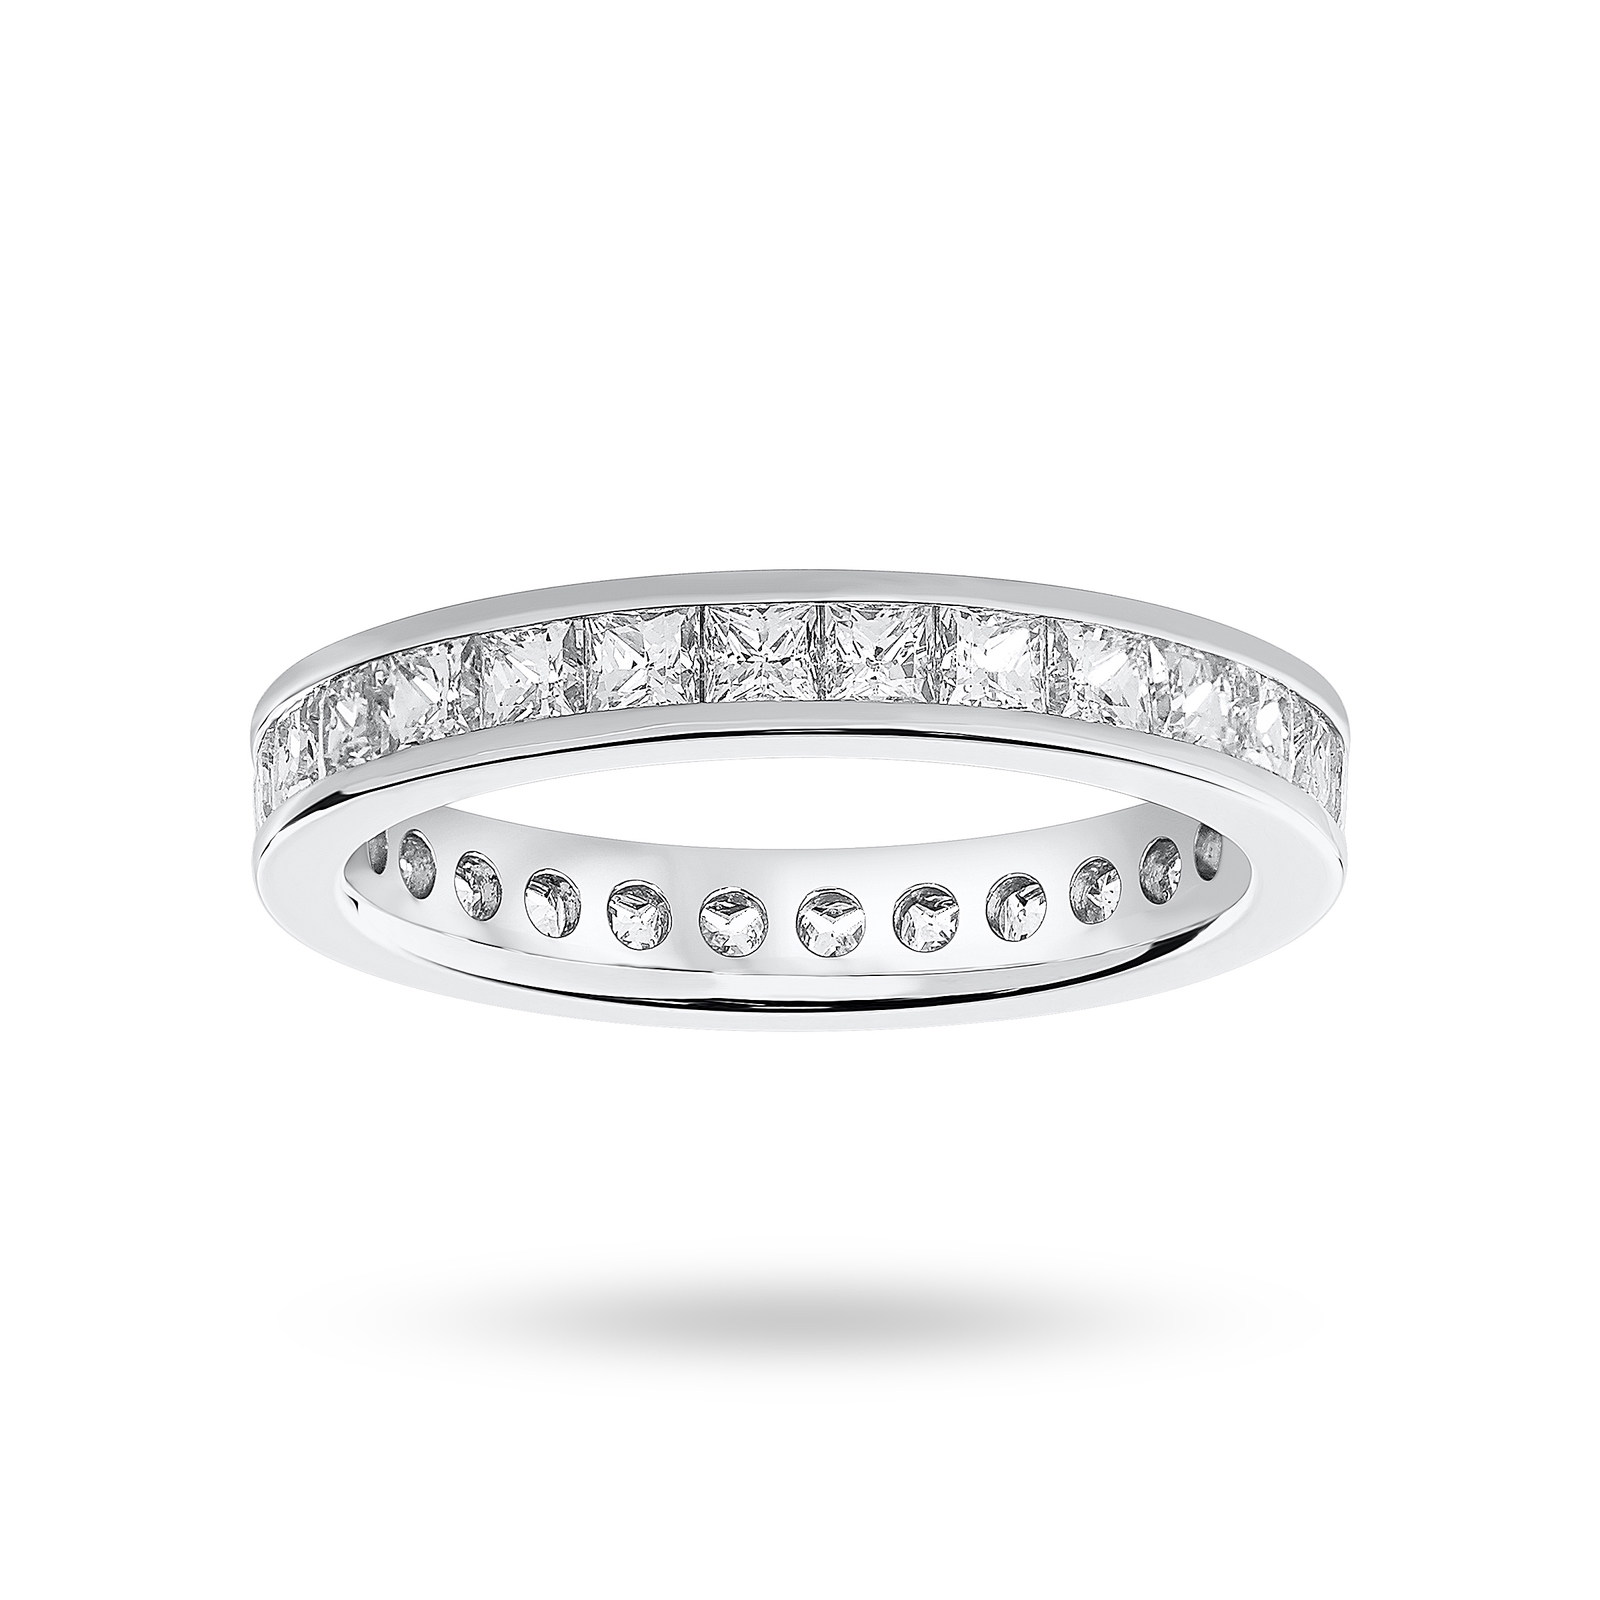 18 Carat White Gold 2.00 Carat Princess Cut Channel Set Full Eternity Ring